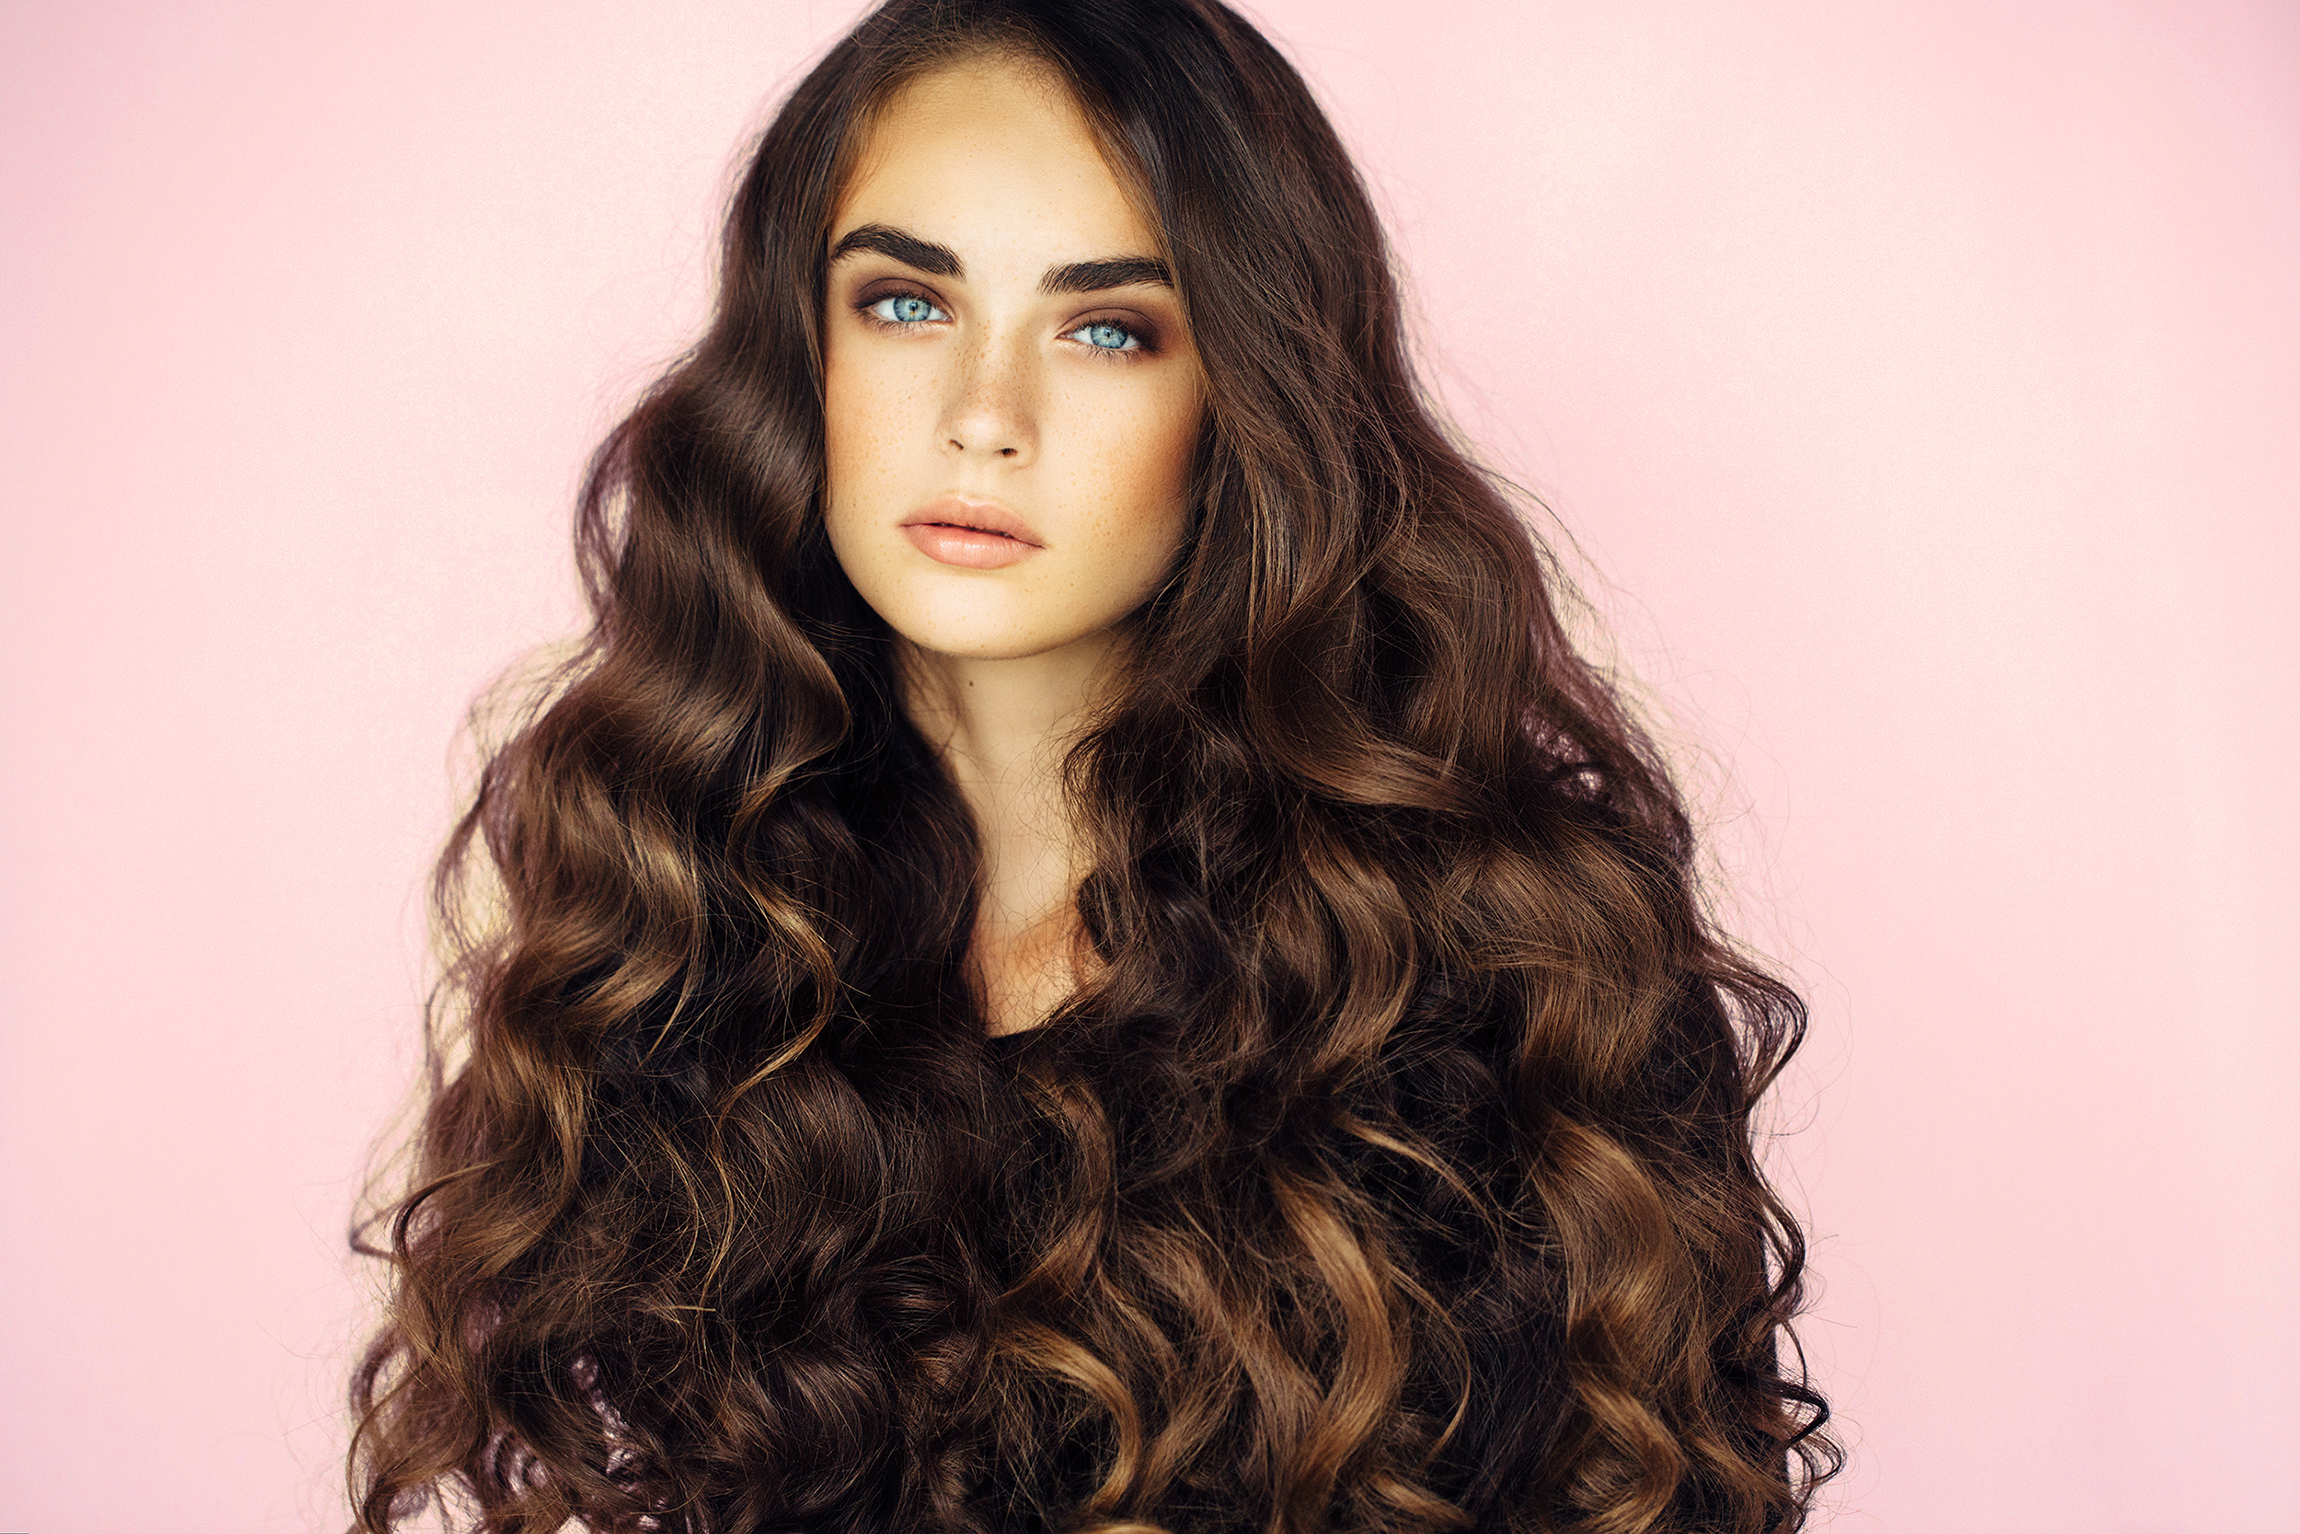 8 Best Hair Extensions - Clip-In, Tape-In,